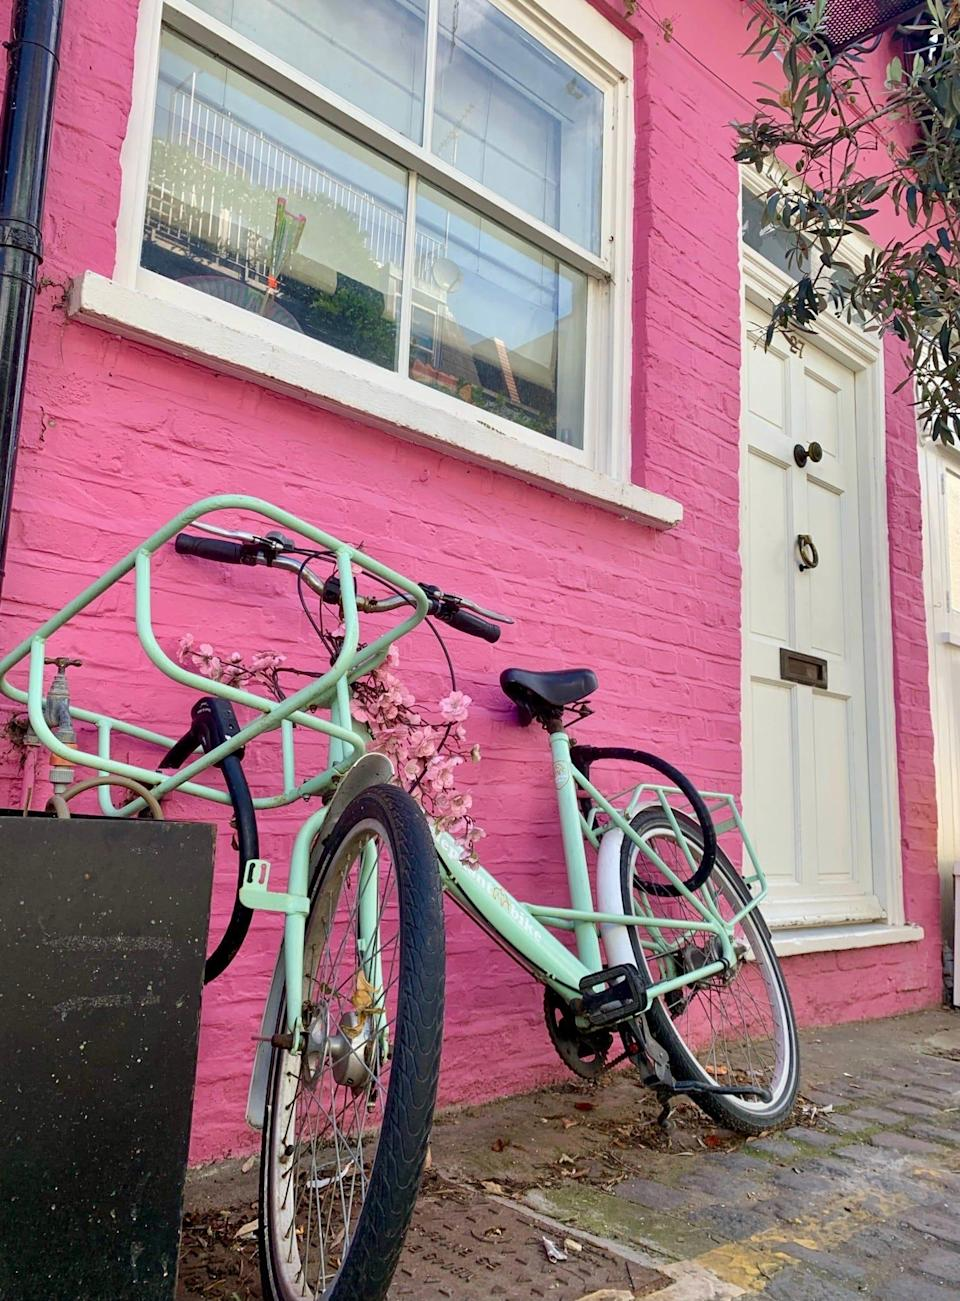 A green bicycle sits out front number 27, St. Lukes Mews.